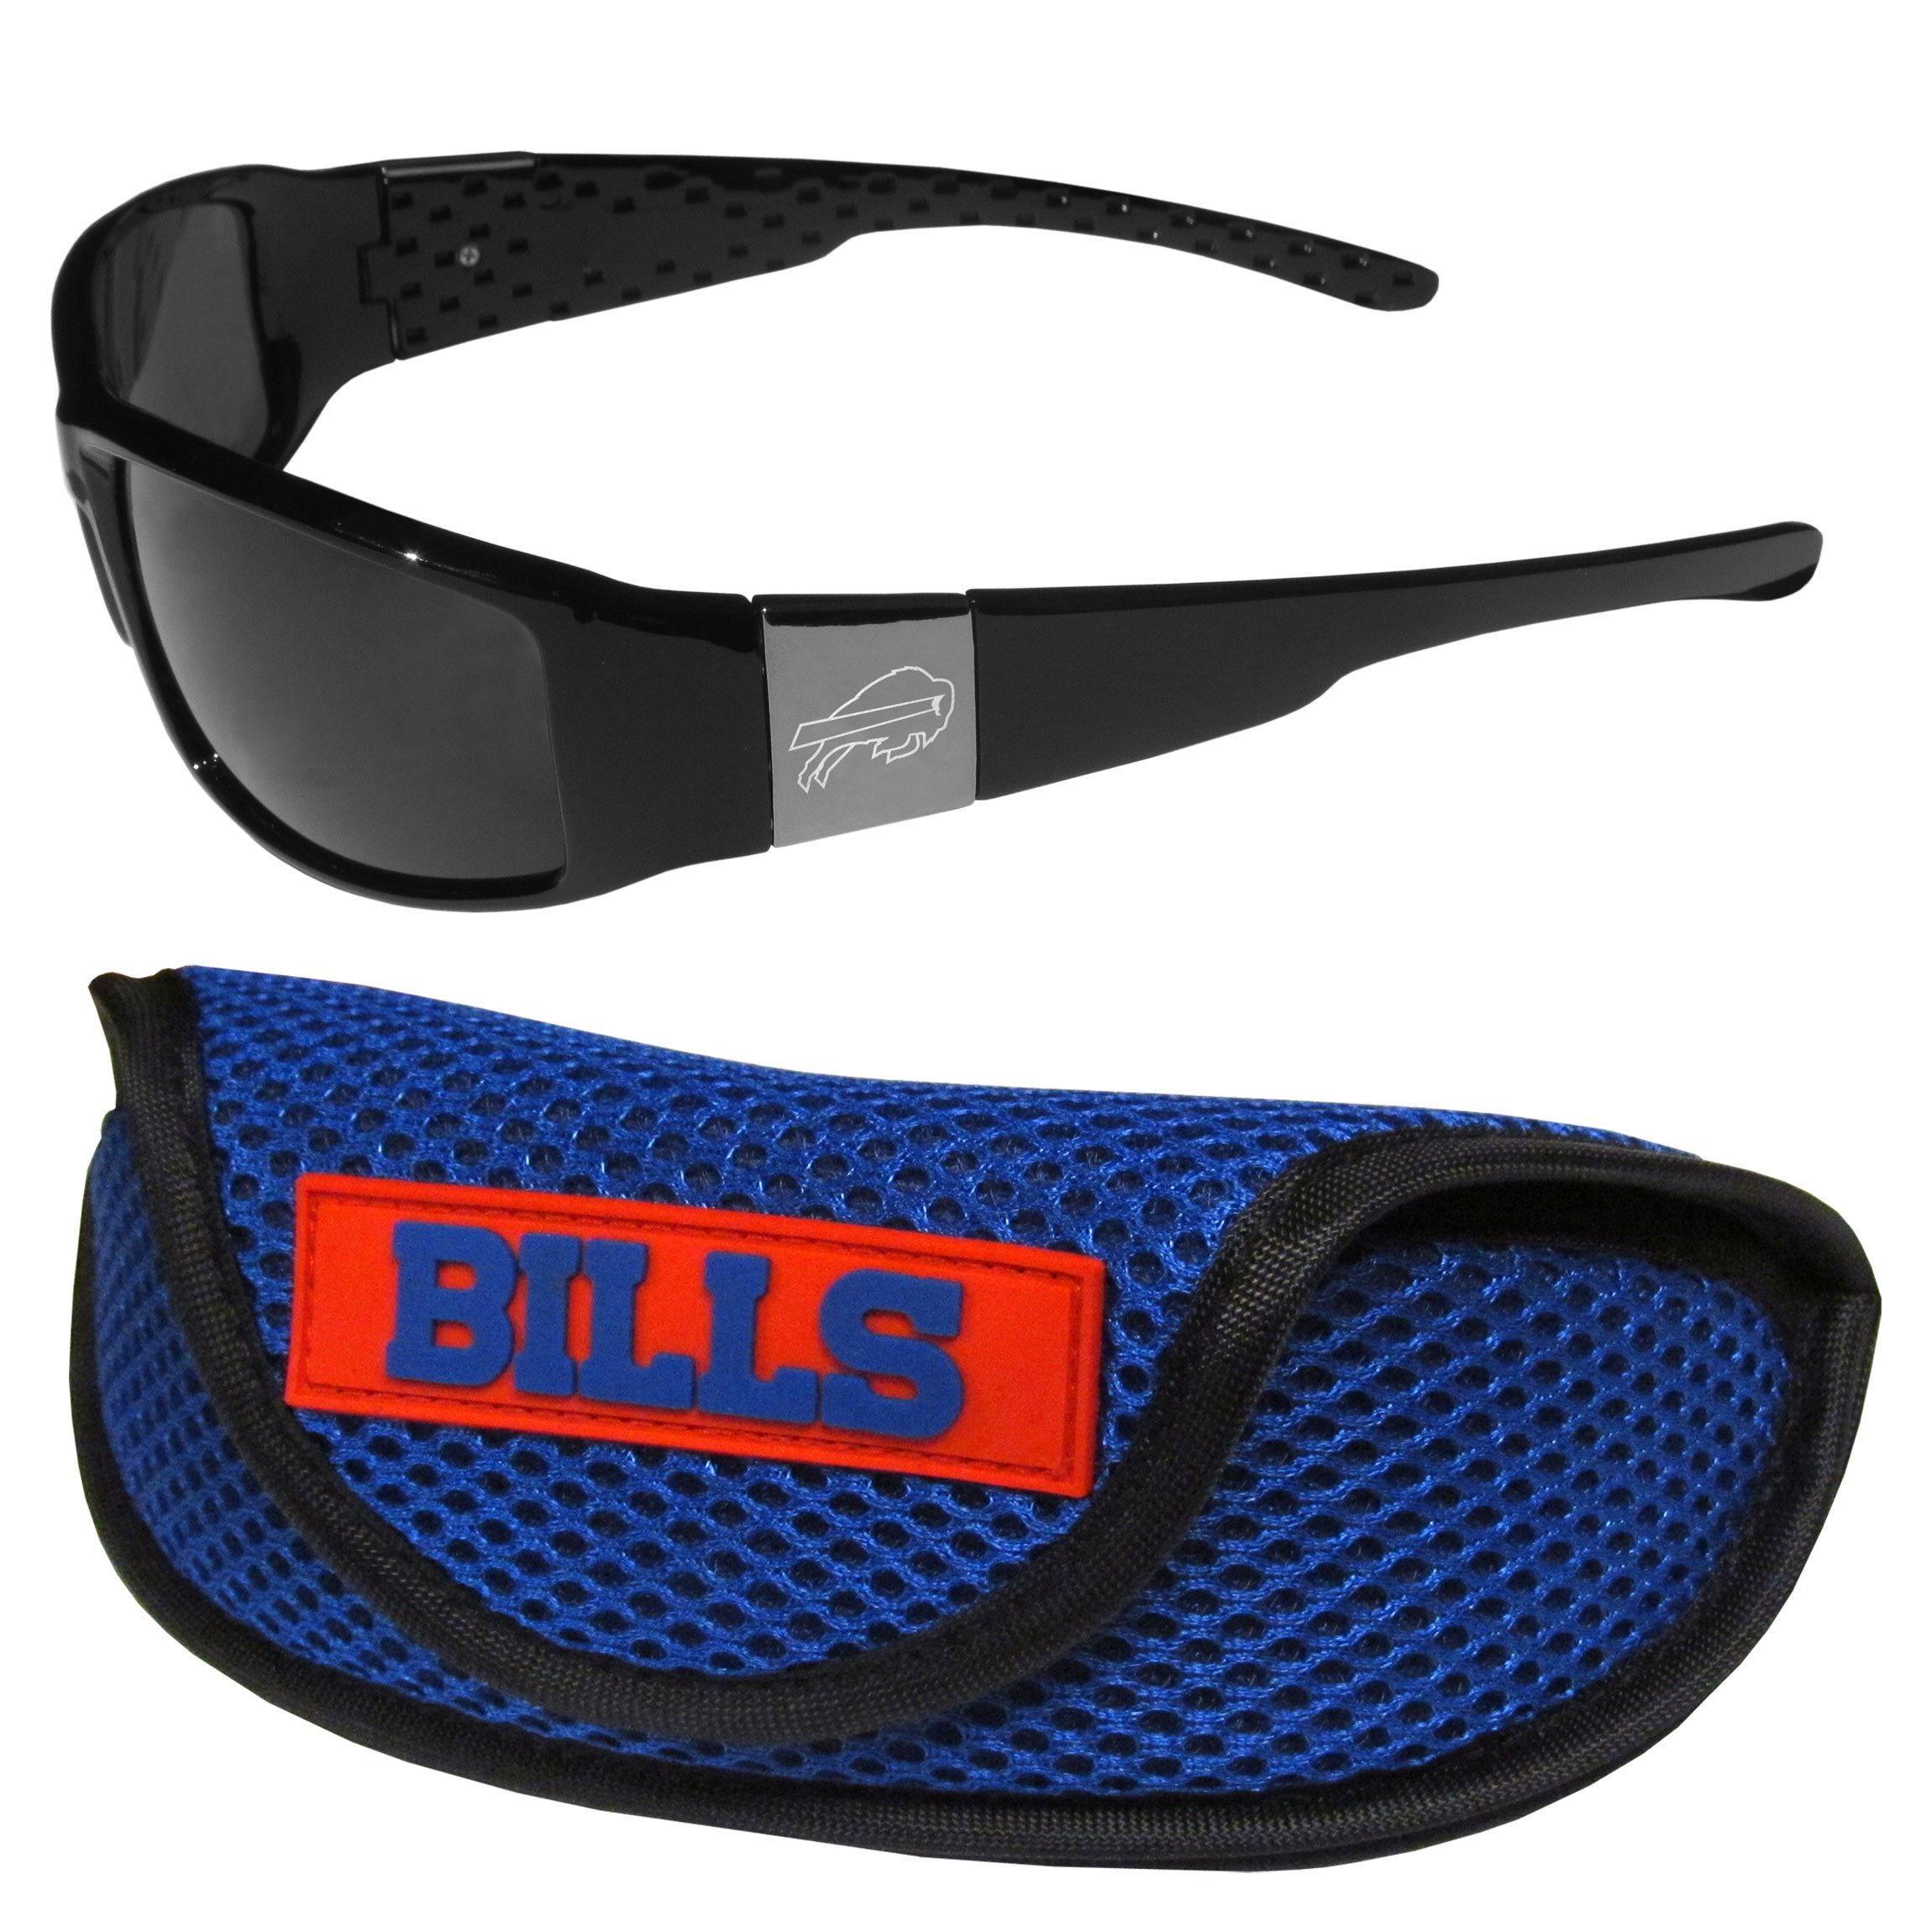 Buffalo Bills Chrome Wrap Sunglasses and Sports Case - Our sleek and stylish Buffalo Bills chrome wrap sunglasses and our sporty mesh case. The sunglasses feature etched team logos on each arm and 100% UVA/UVB protection. The case features a large and colorful team emblem.